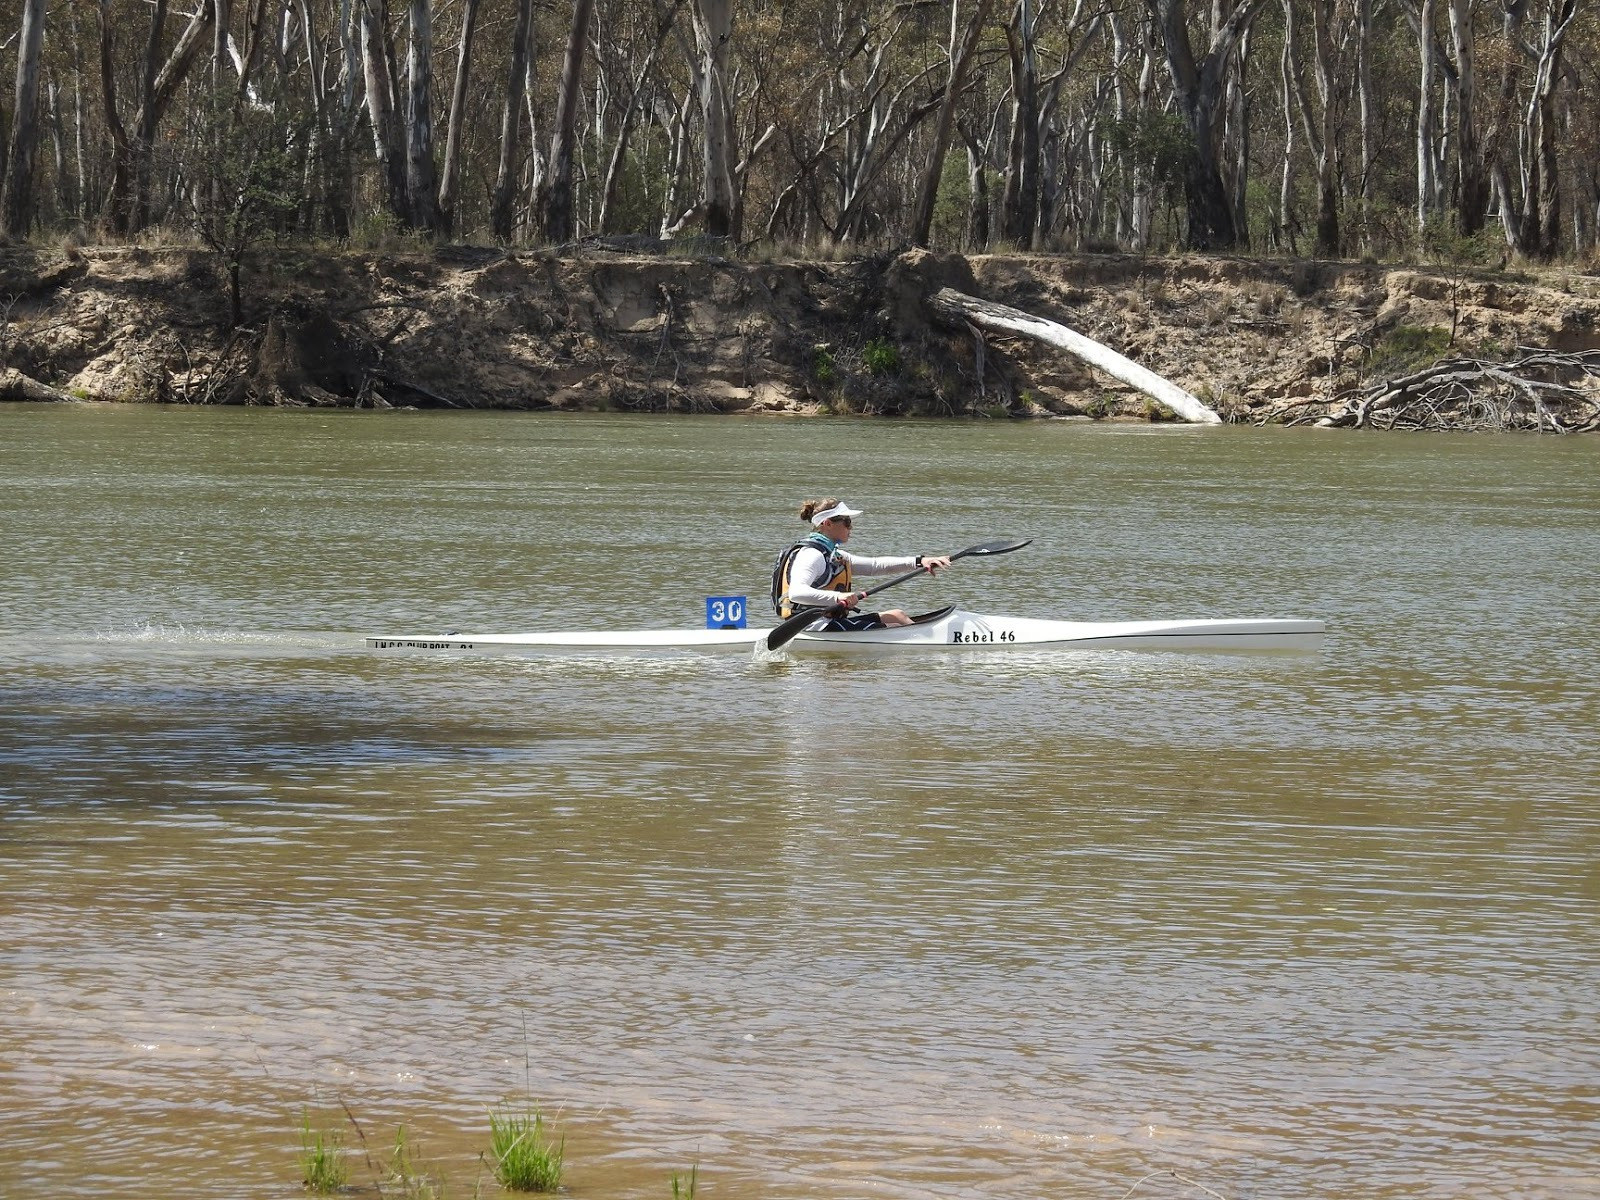 Nicole Tattersall Kayaking on the Murray River Victoria / New South Wales